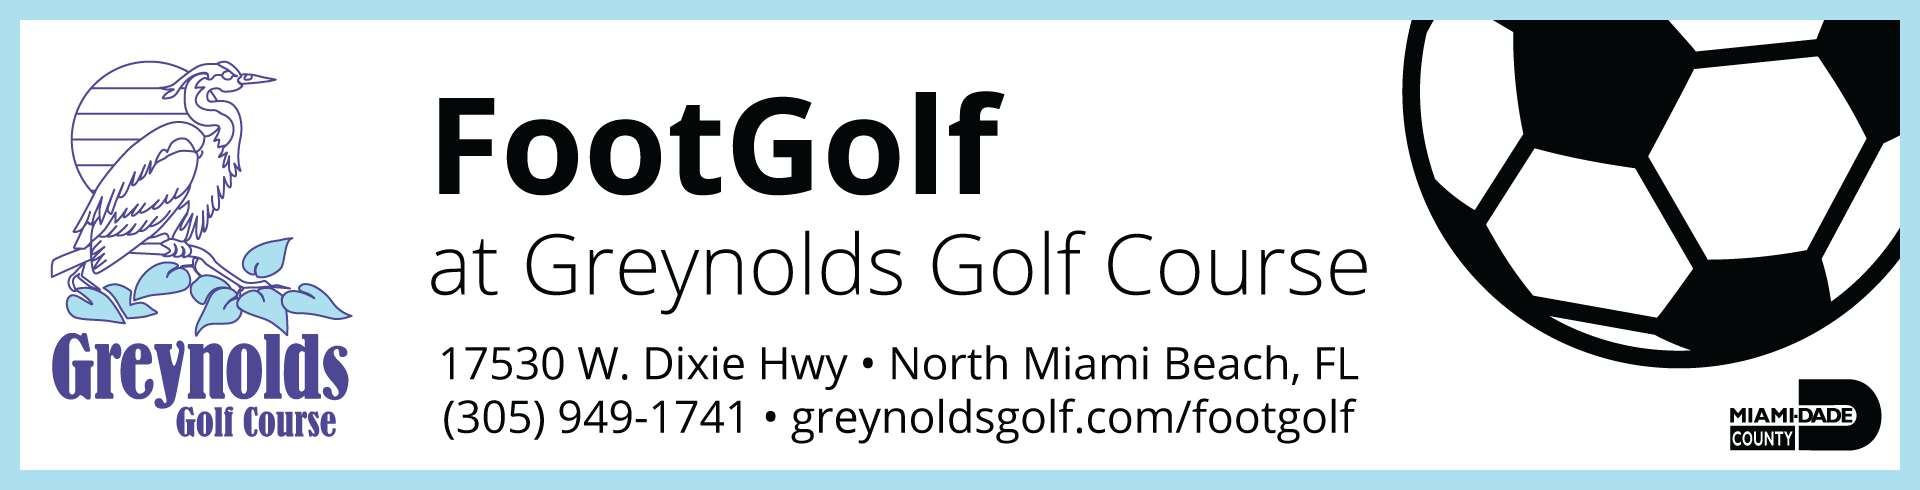 FootGolf at Greynolds Golf Course